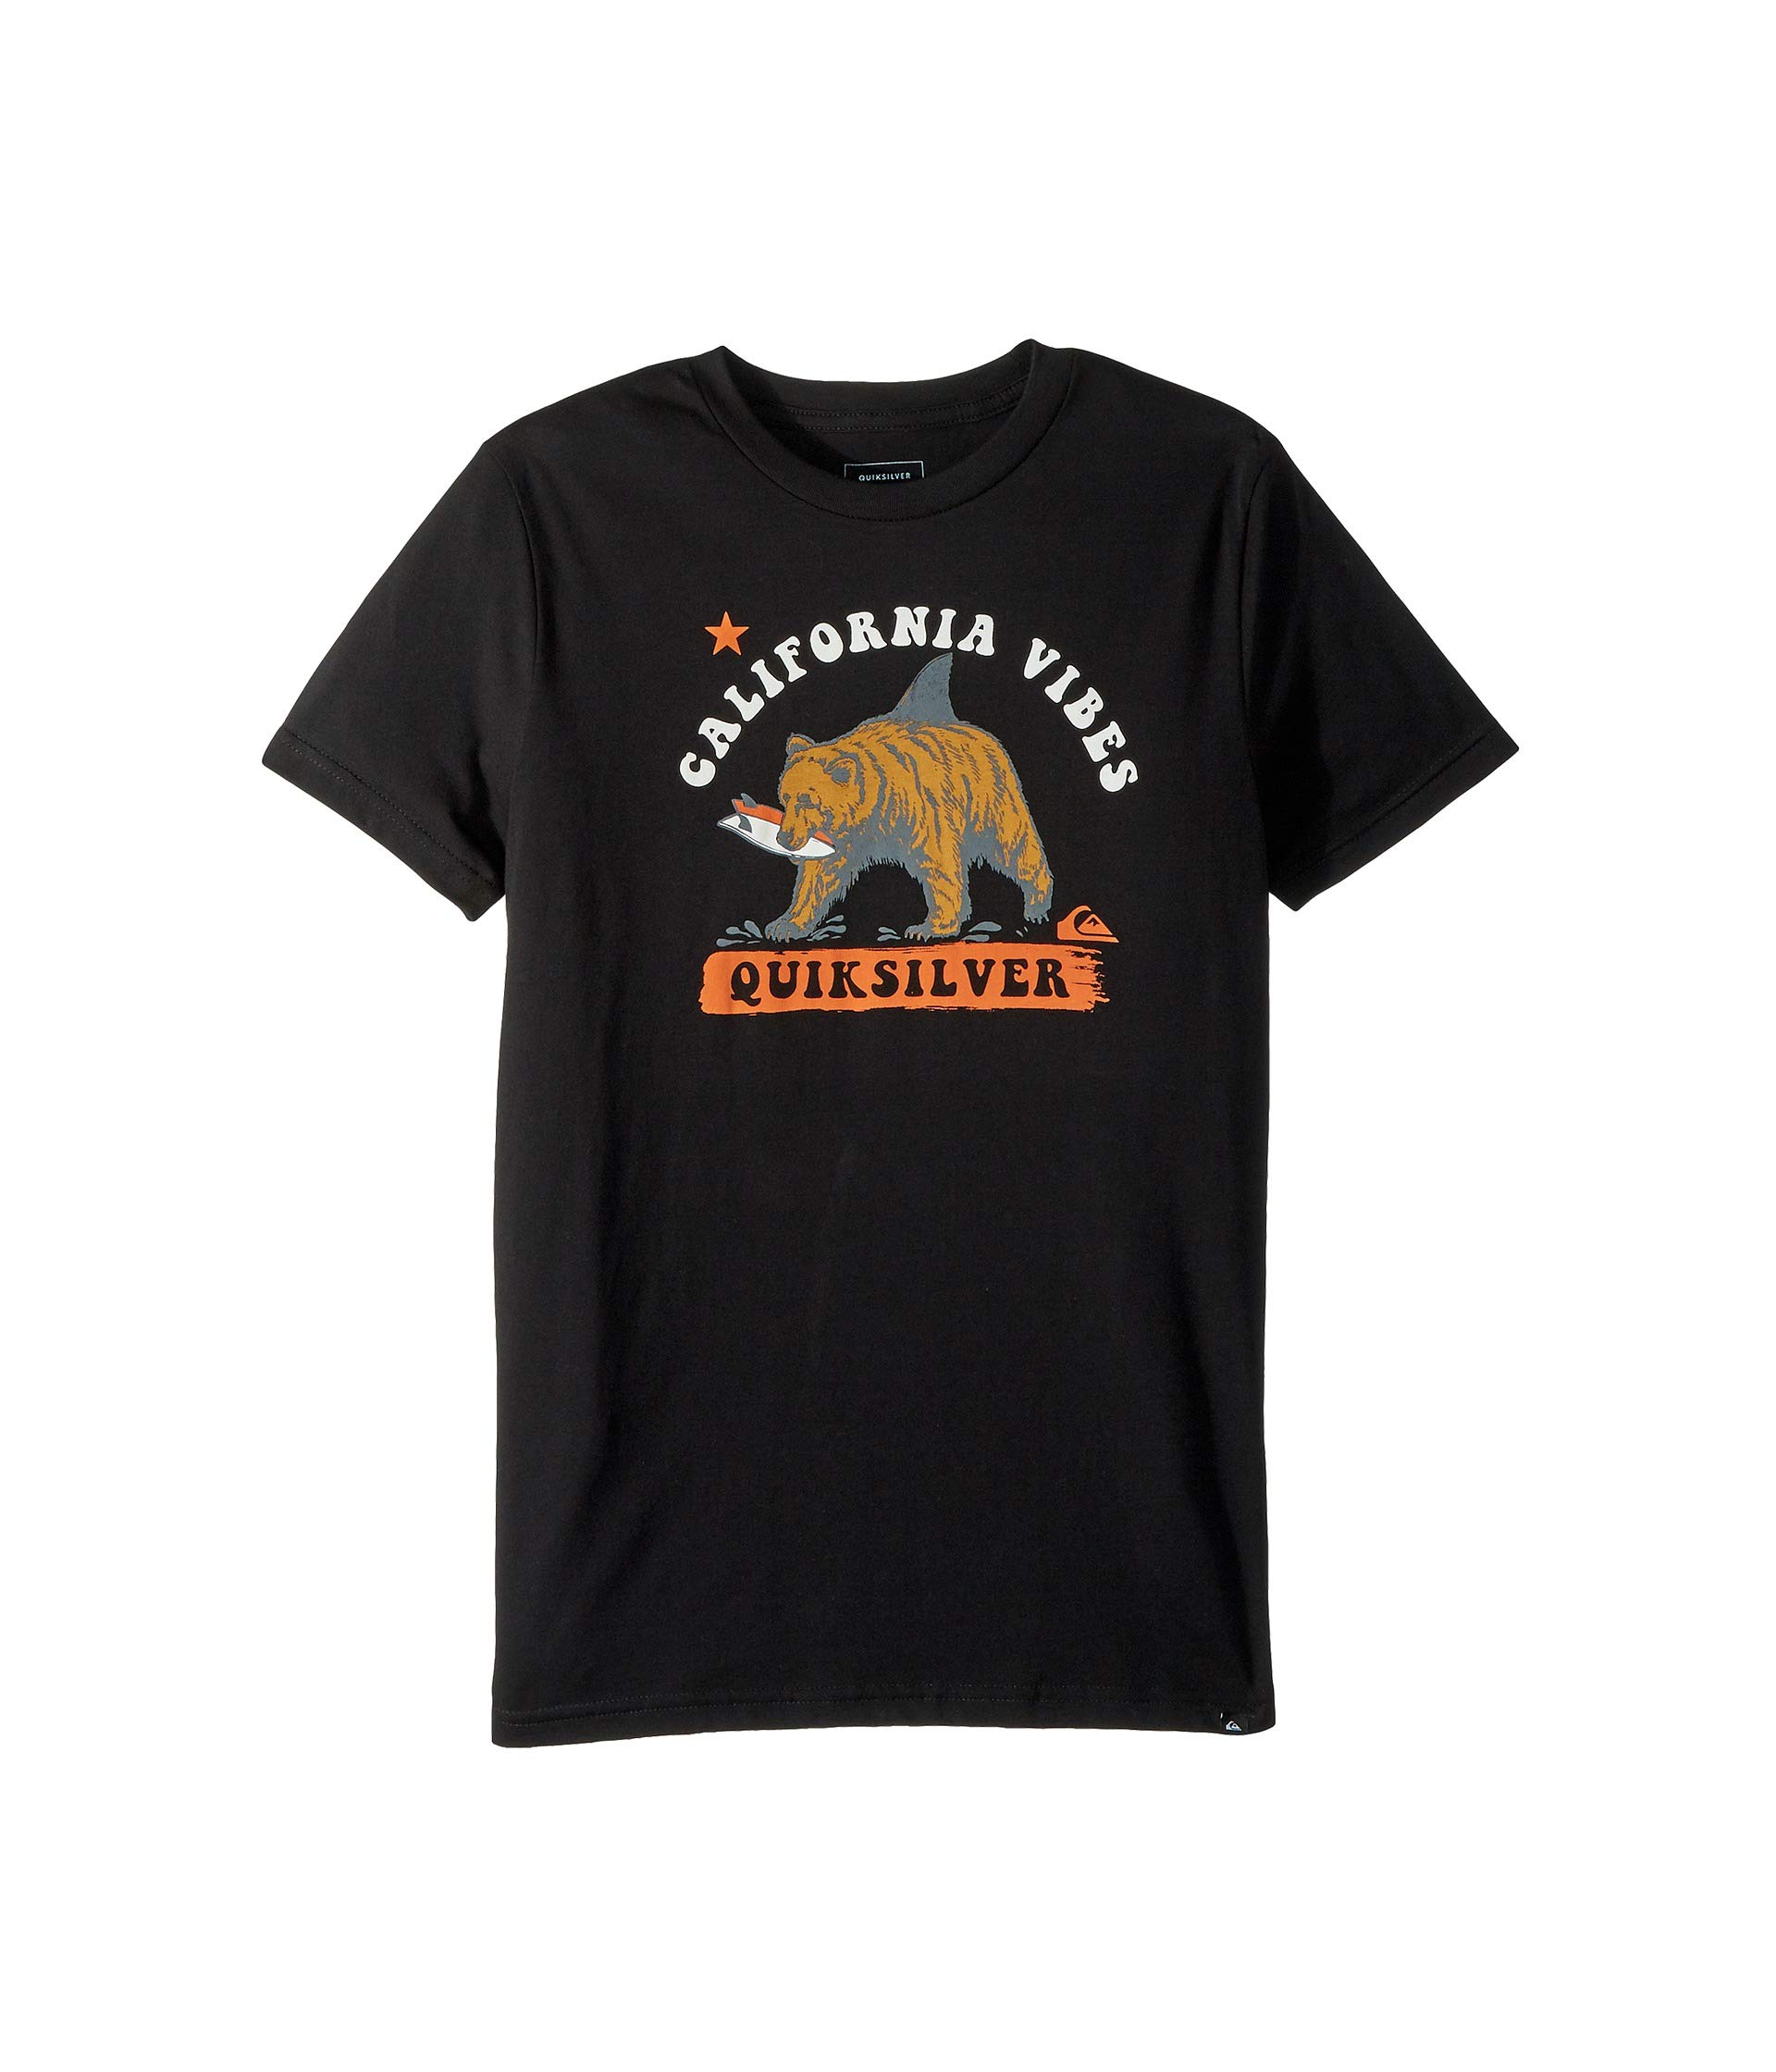 Quiksilver Boys' Big CALI Bear Shark Youth TEE Shirt, Black, XL/16